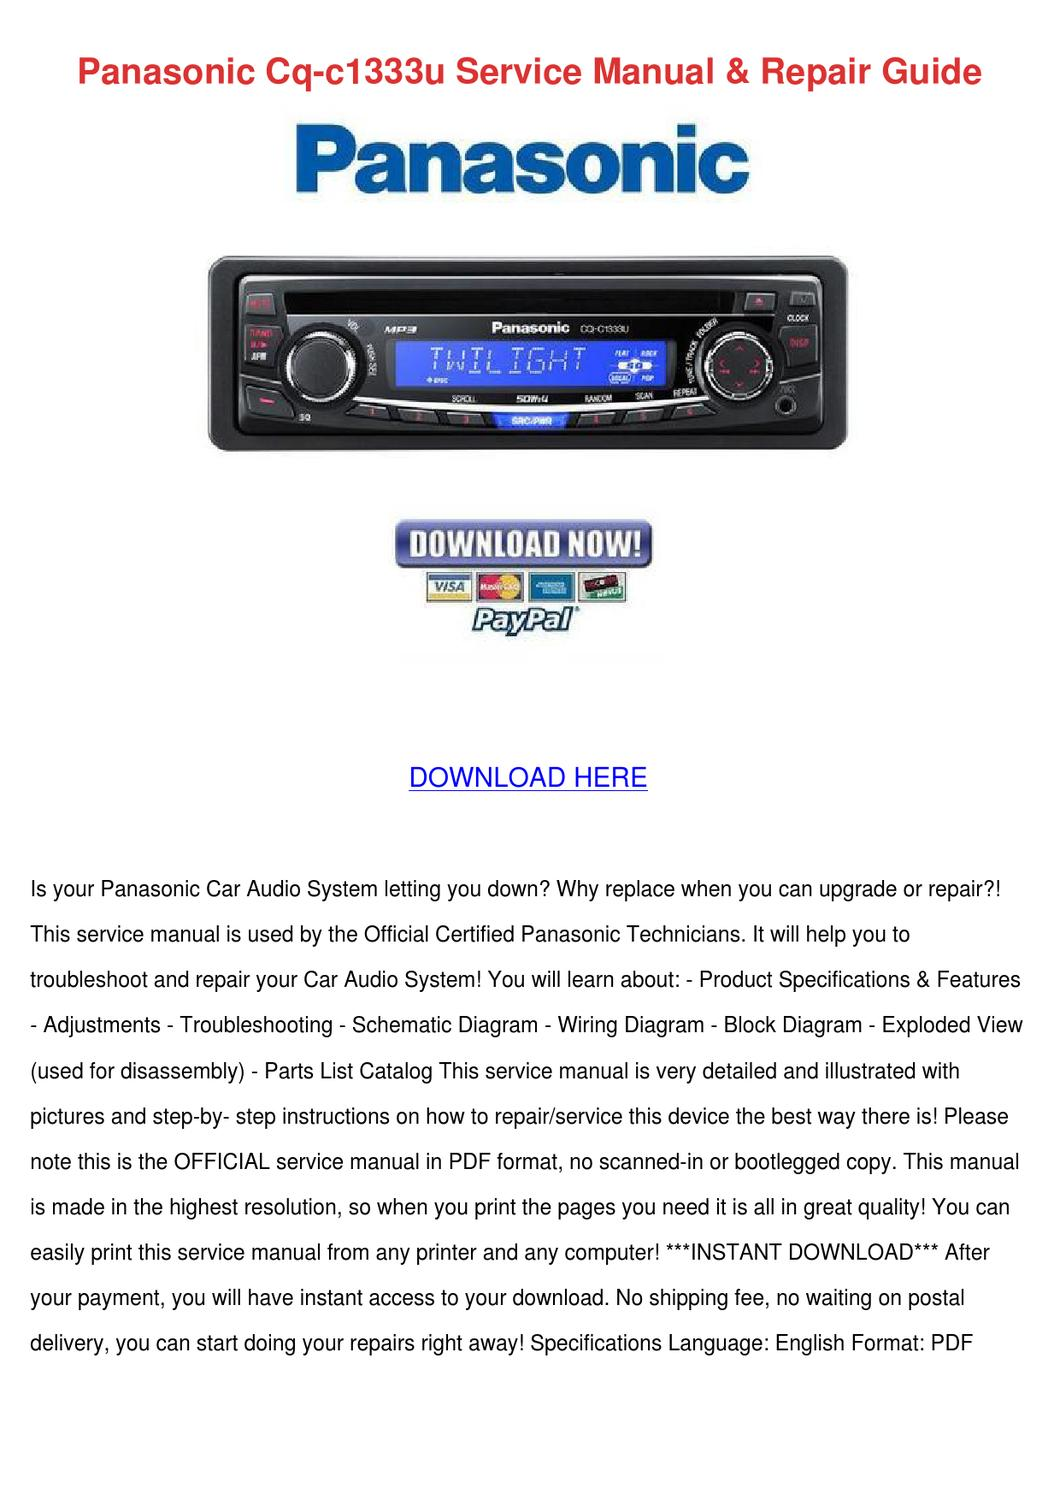 Wiring diagram panasonic cq c u car radio